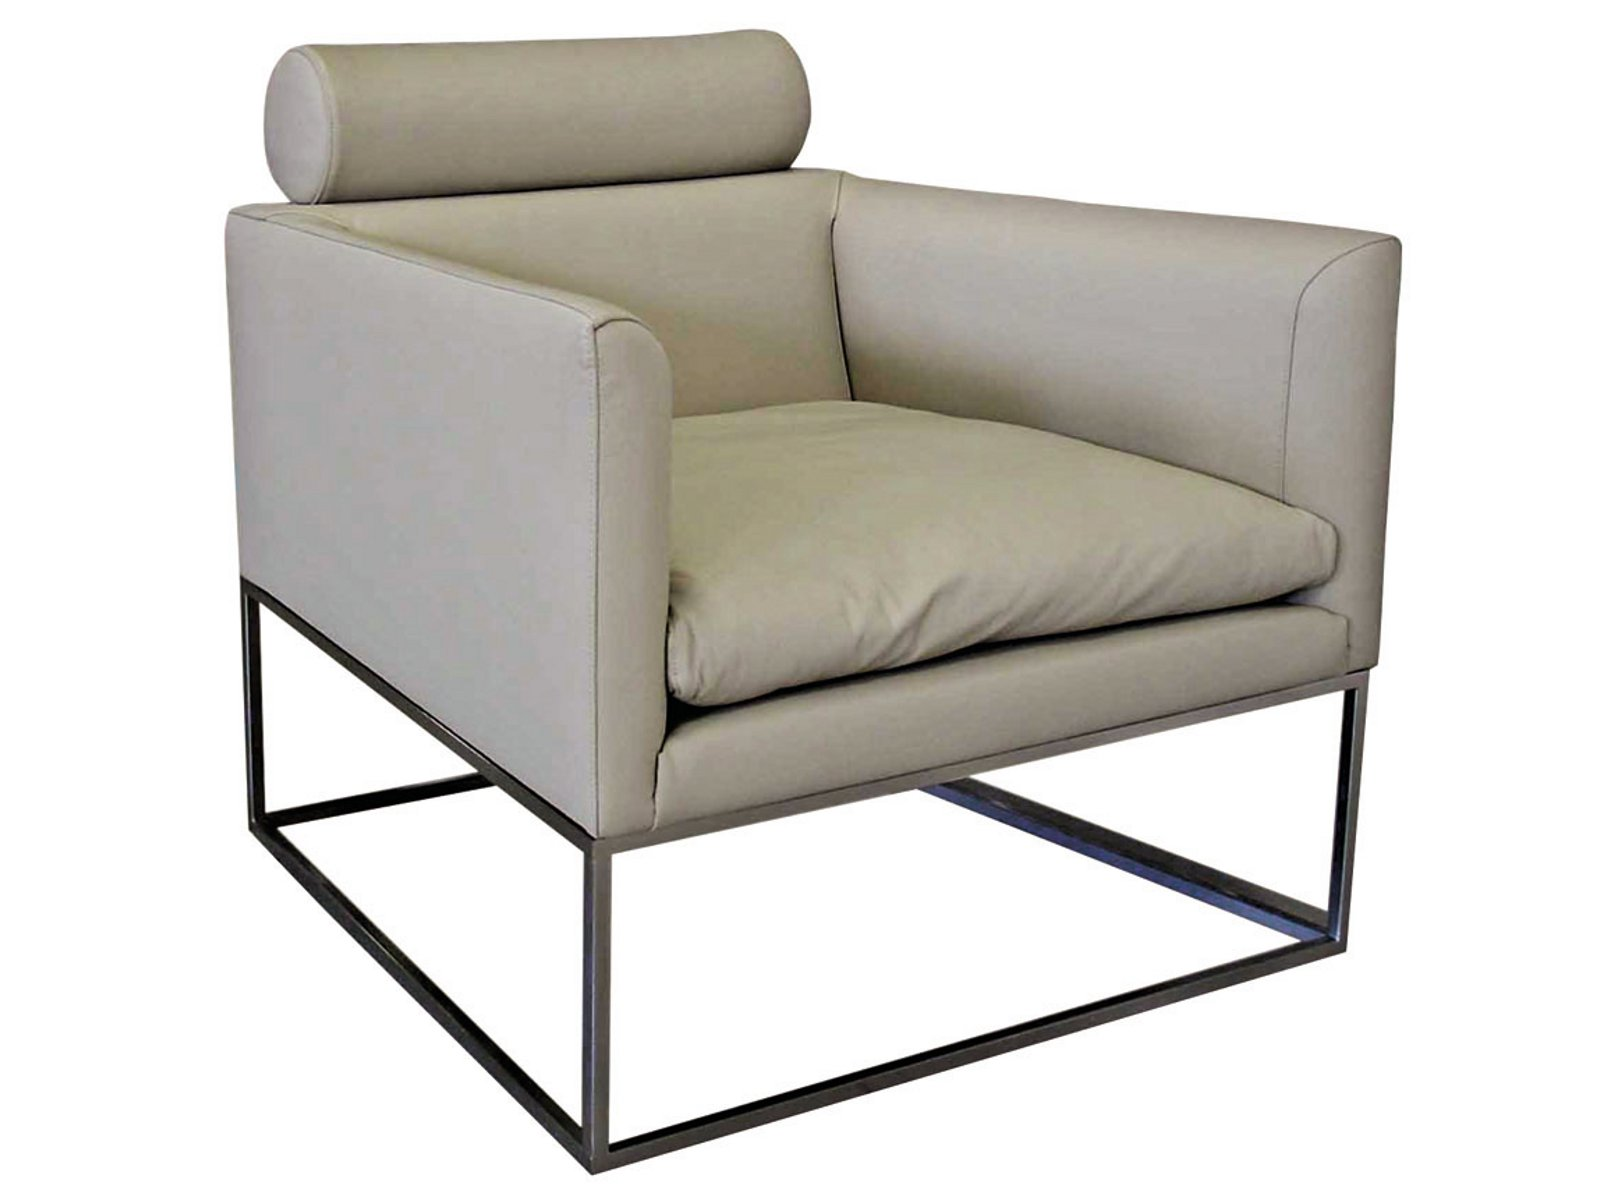 Fauteuil en cuir cadrage collection les contemporains by roche bobois design giorgio soressi for Chaise roche bobois cuir